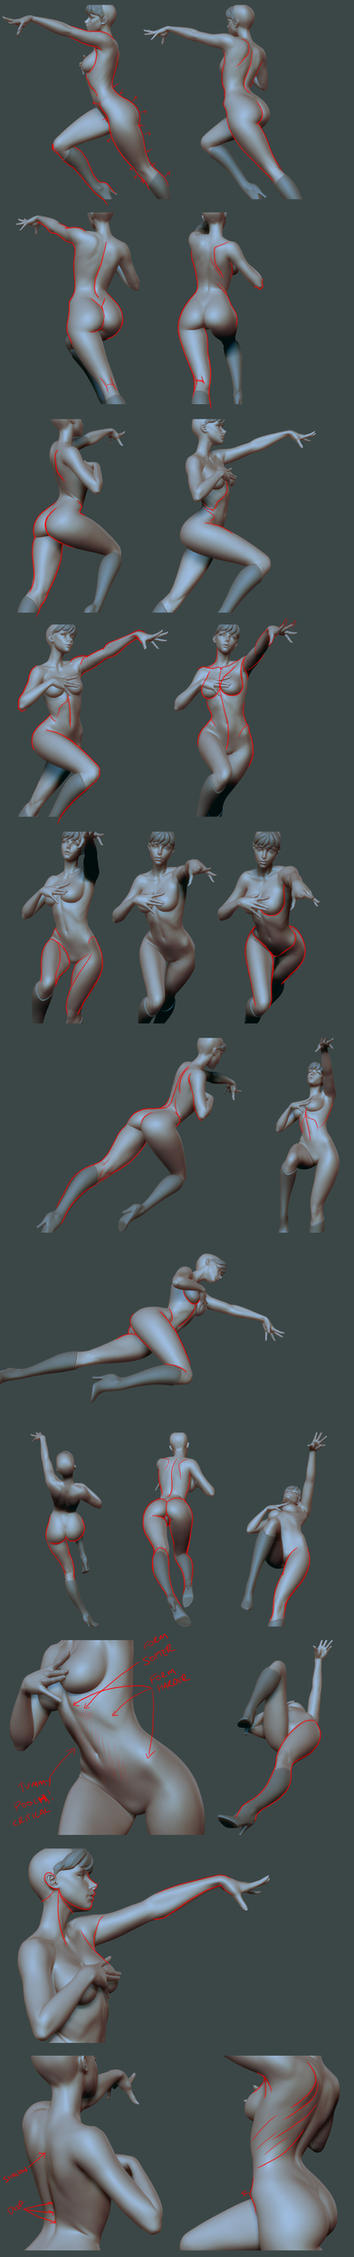 Morrigan Base Body Tweaks - Lines by HazardousArts